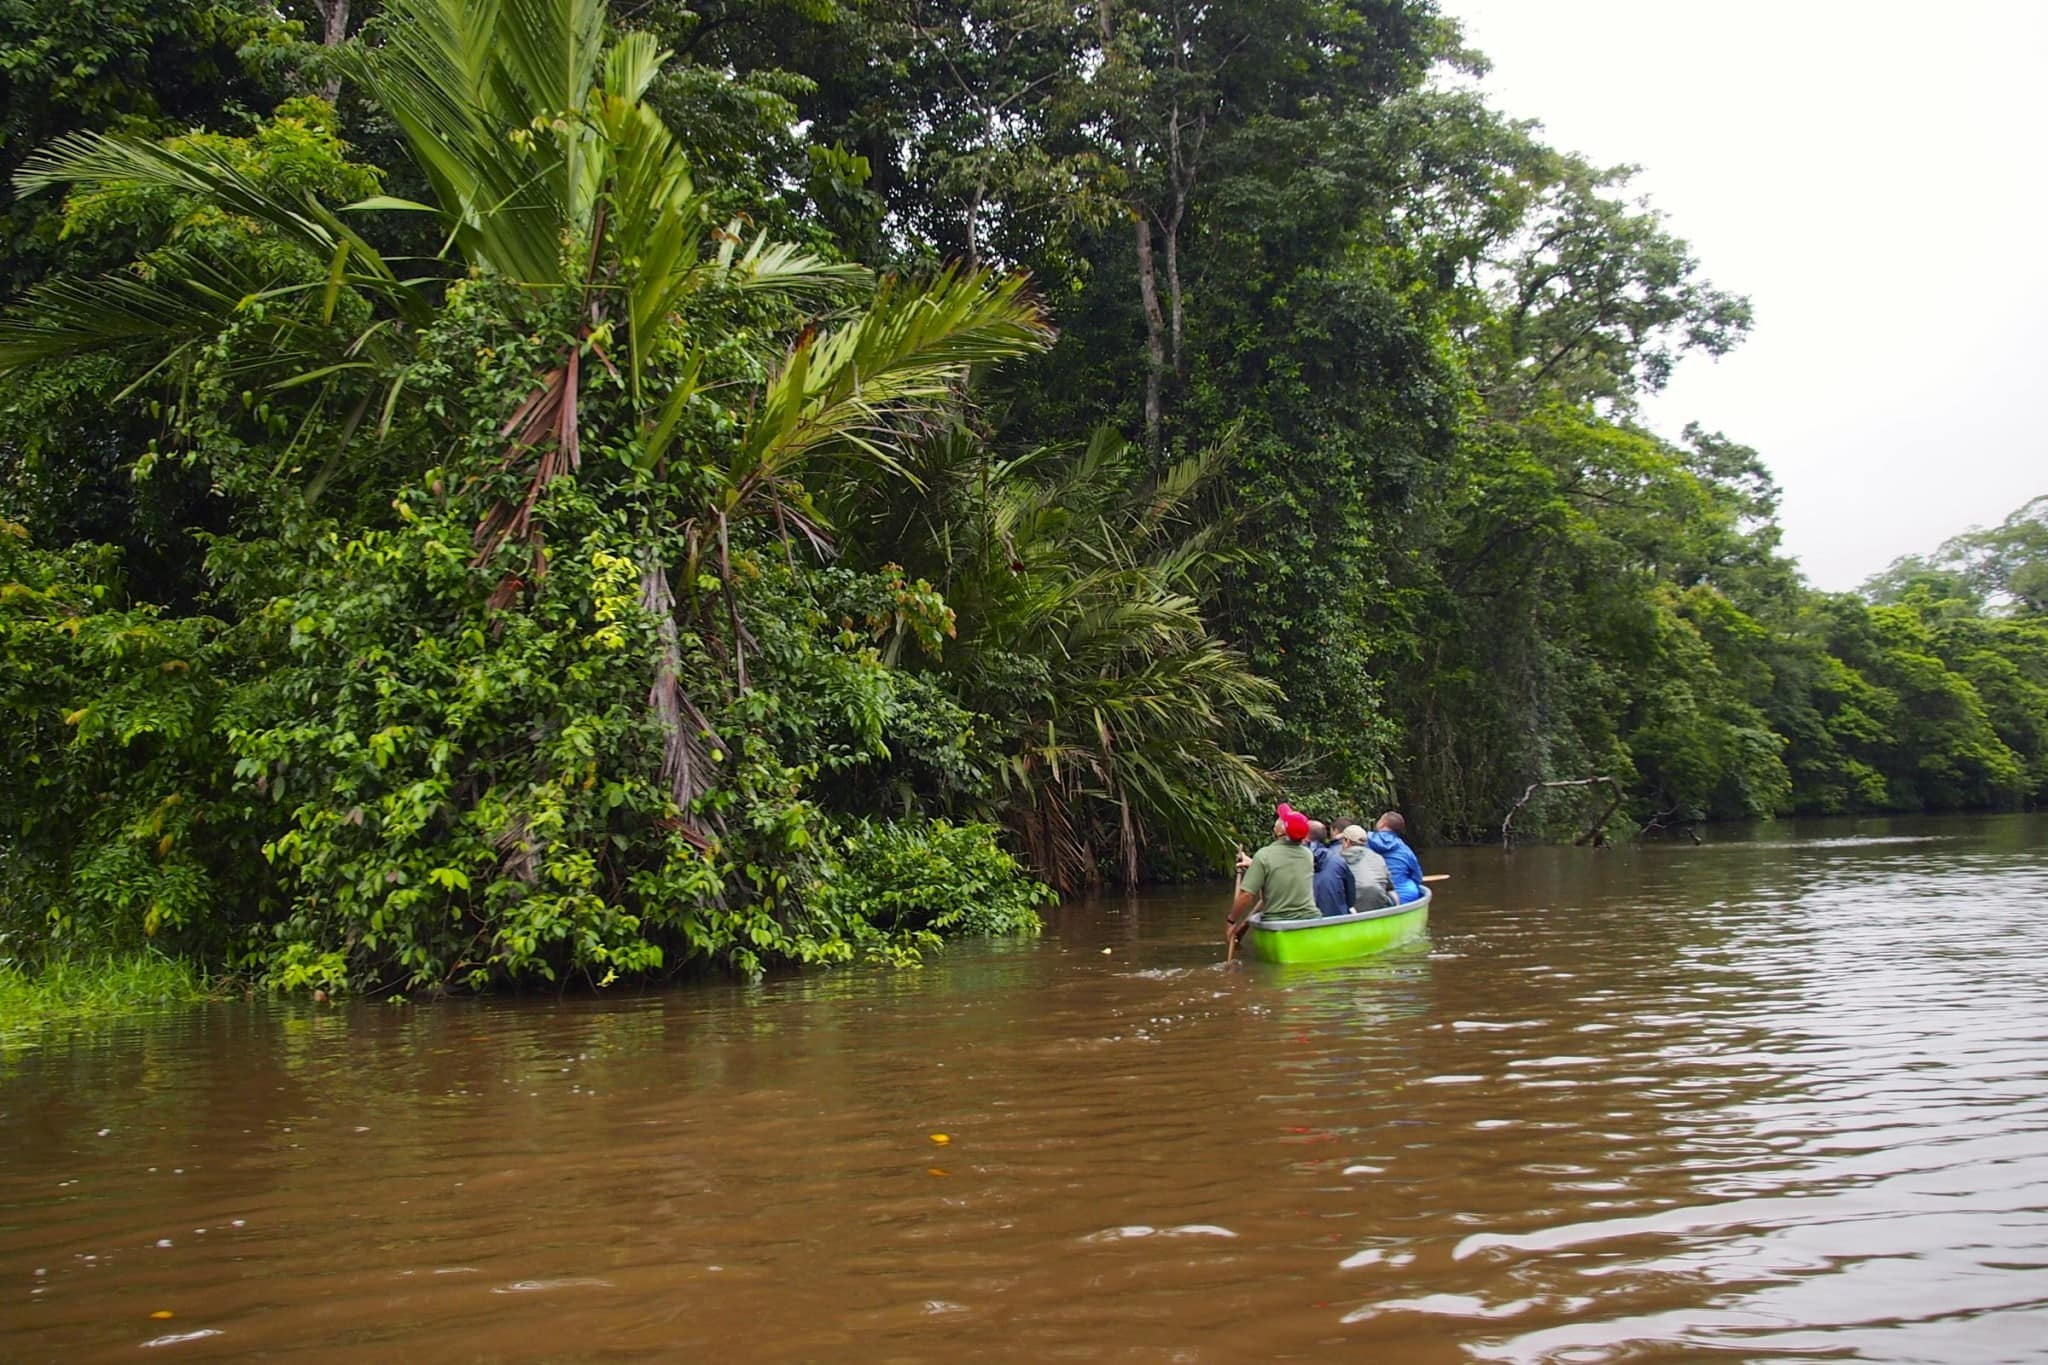 Touring Costa Rica's Tortuguero National Forest by Canoe